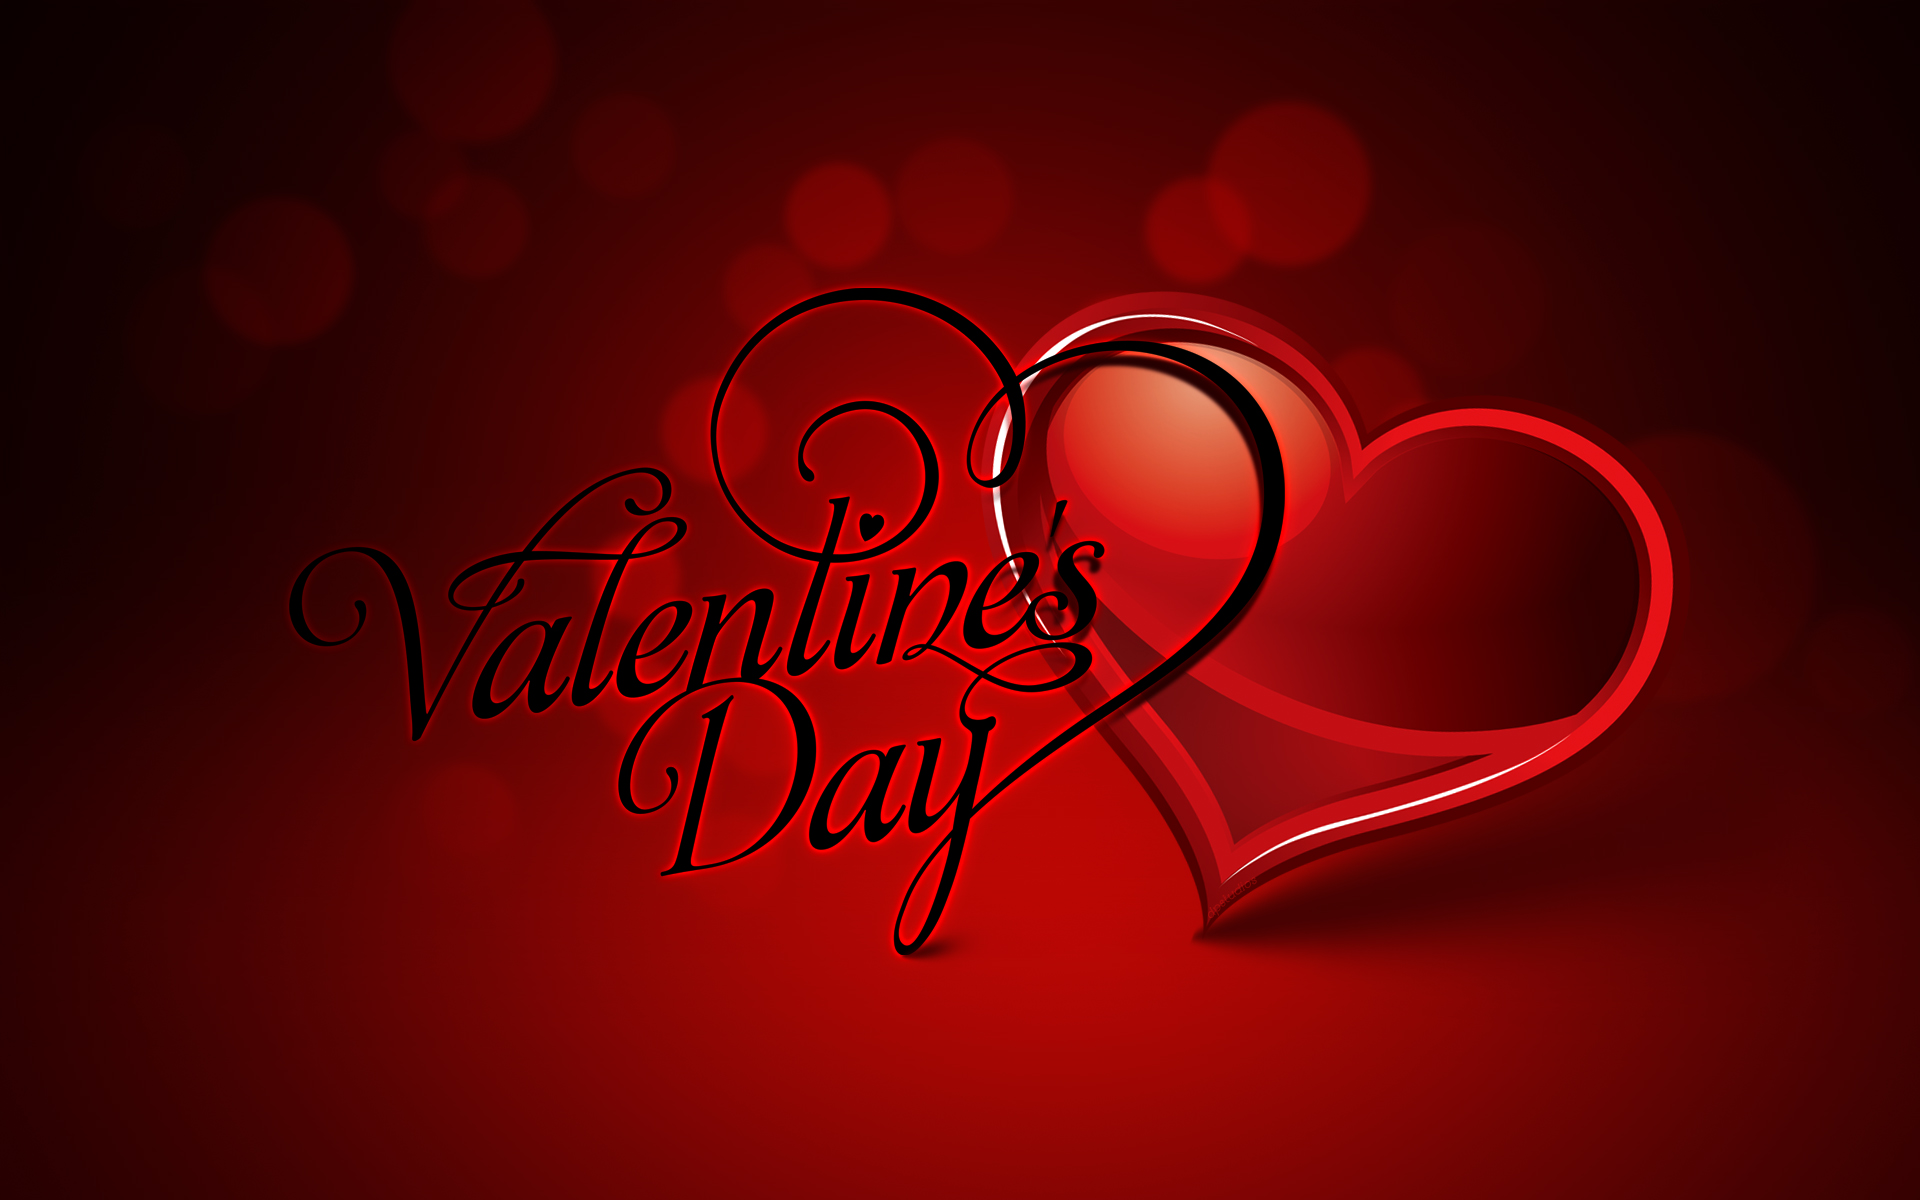 valentines day wallpaper free hd background